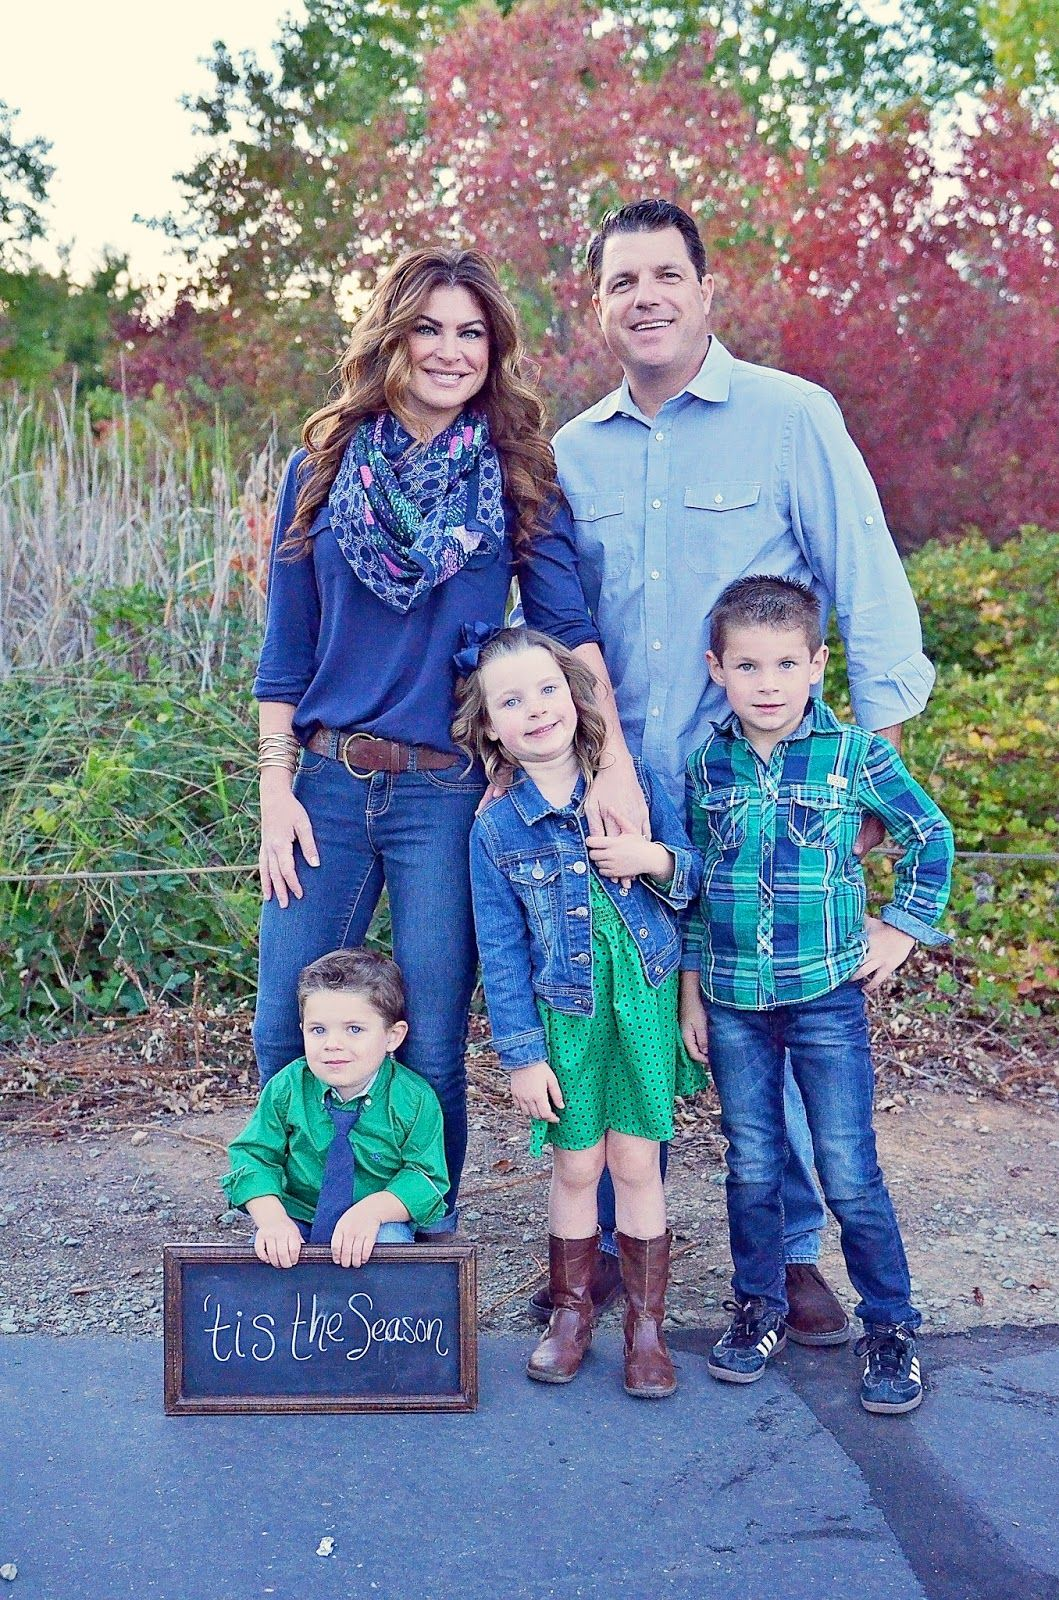 Fall family photos what to wear 2015 california Fall family photo clothing ideas